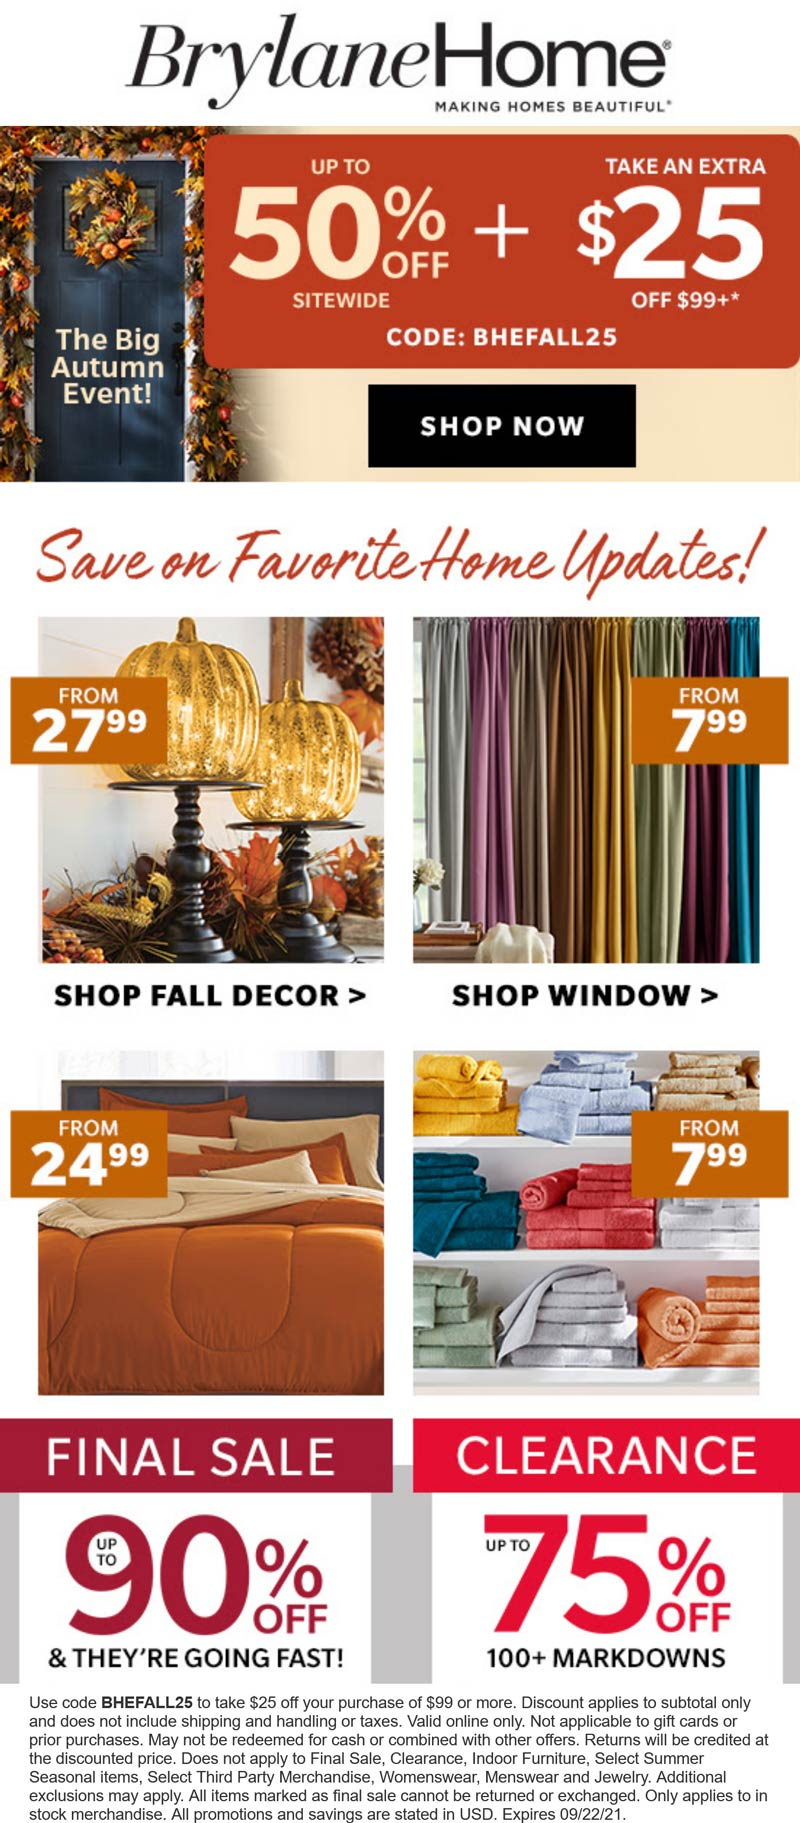 Brylane Home coupons & promo code for [September 2021]